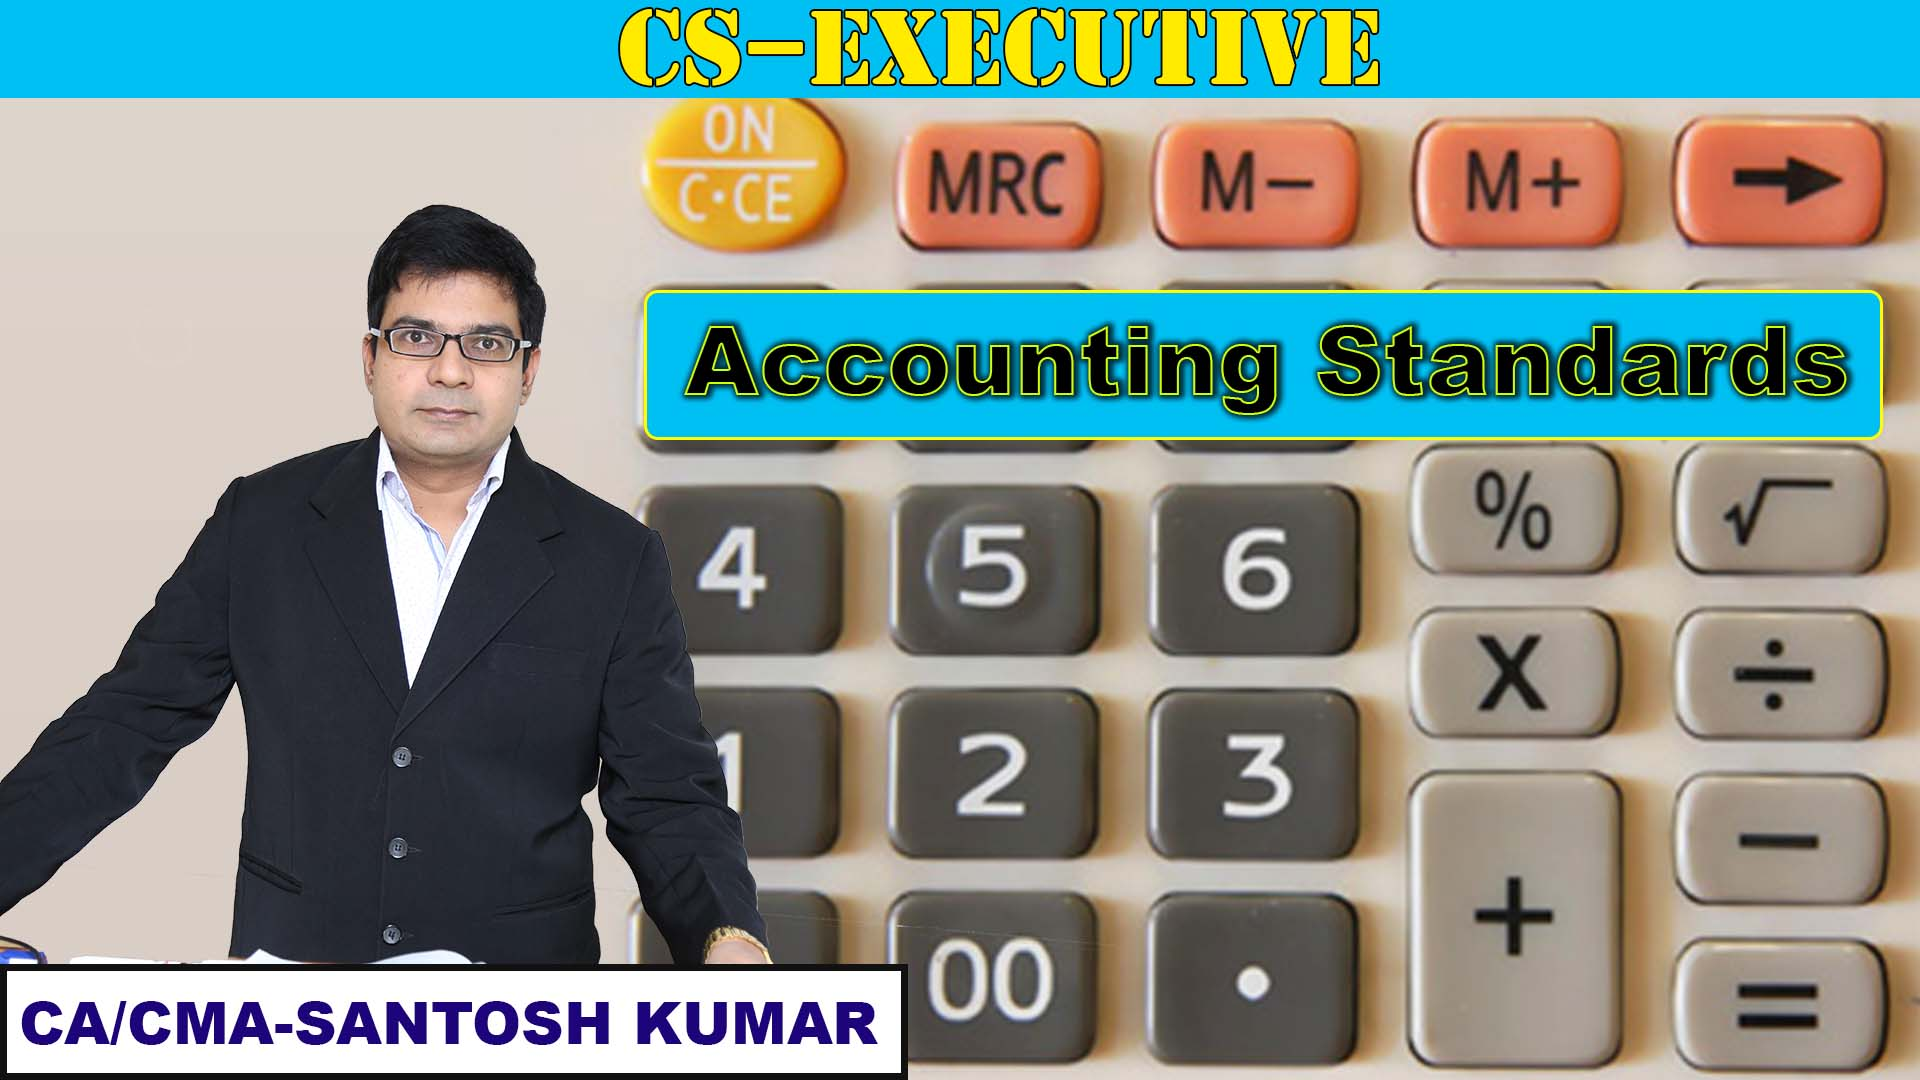 Accounting standards (1,2,4,5,10,12,15,17,19,20,26,29)